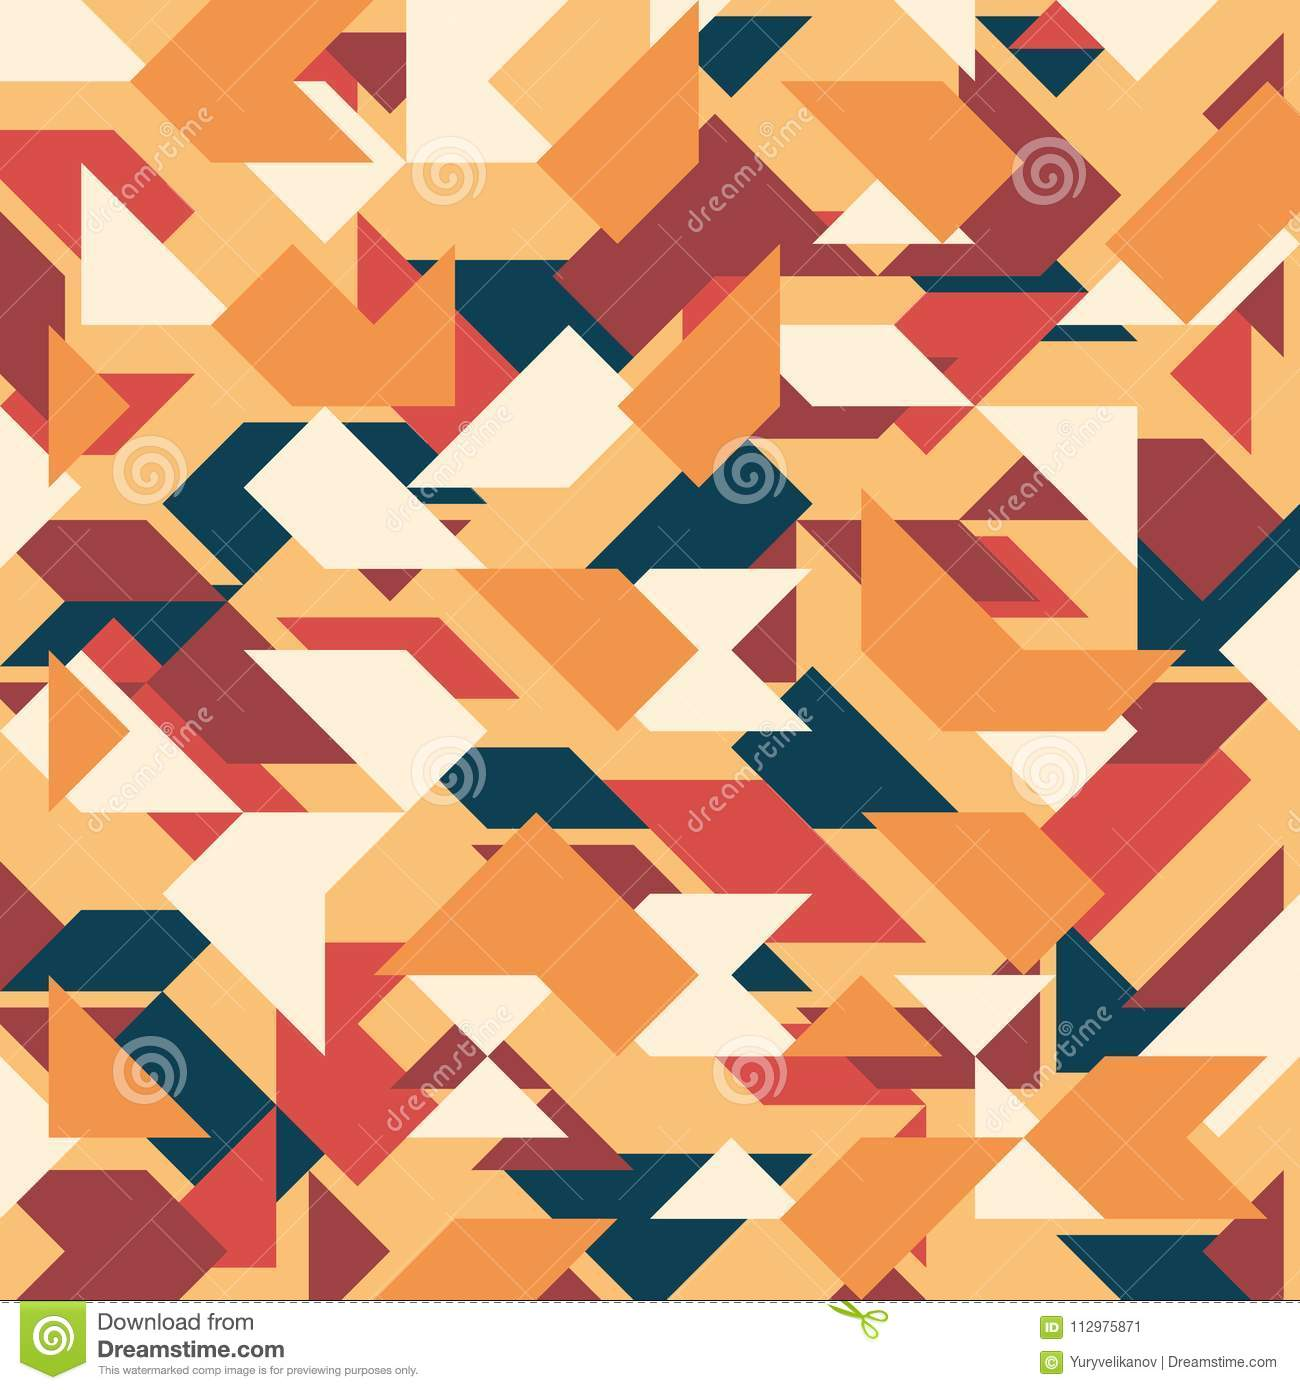 Abstract geometric background. Retro overlapping triangles and rhombuses.